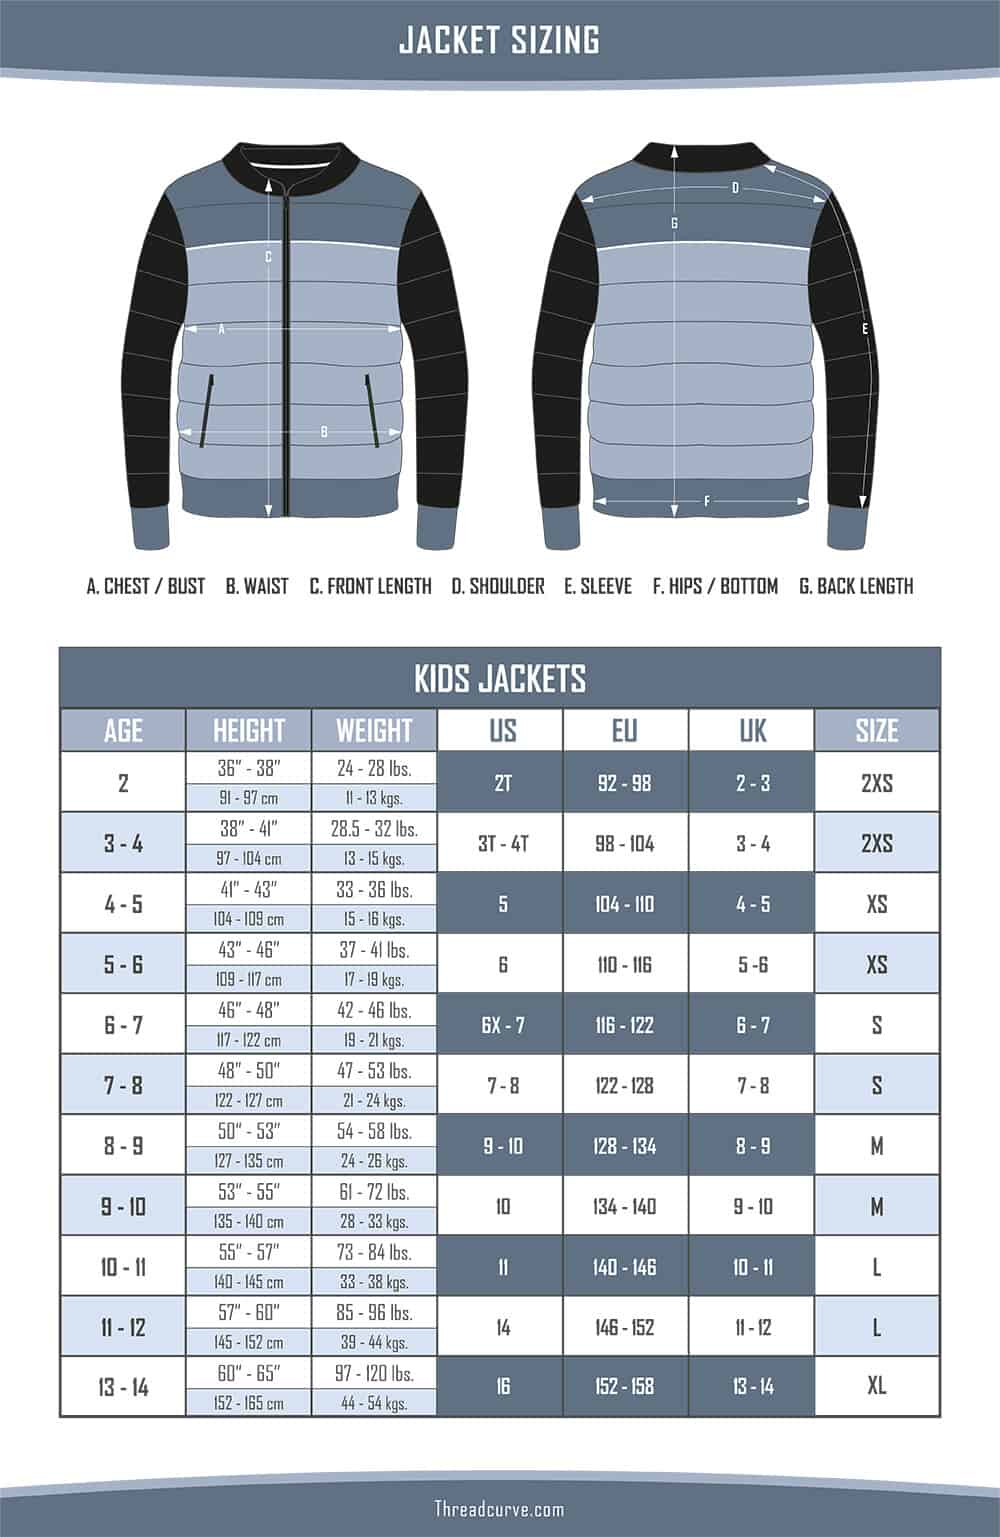 This is the chart for the Kids Jackets Sizes.